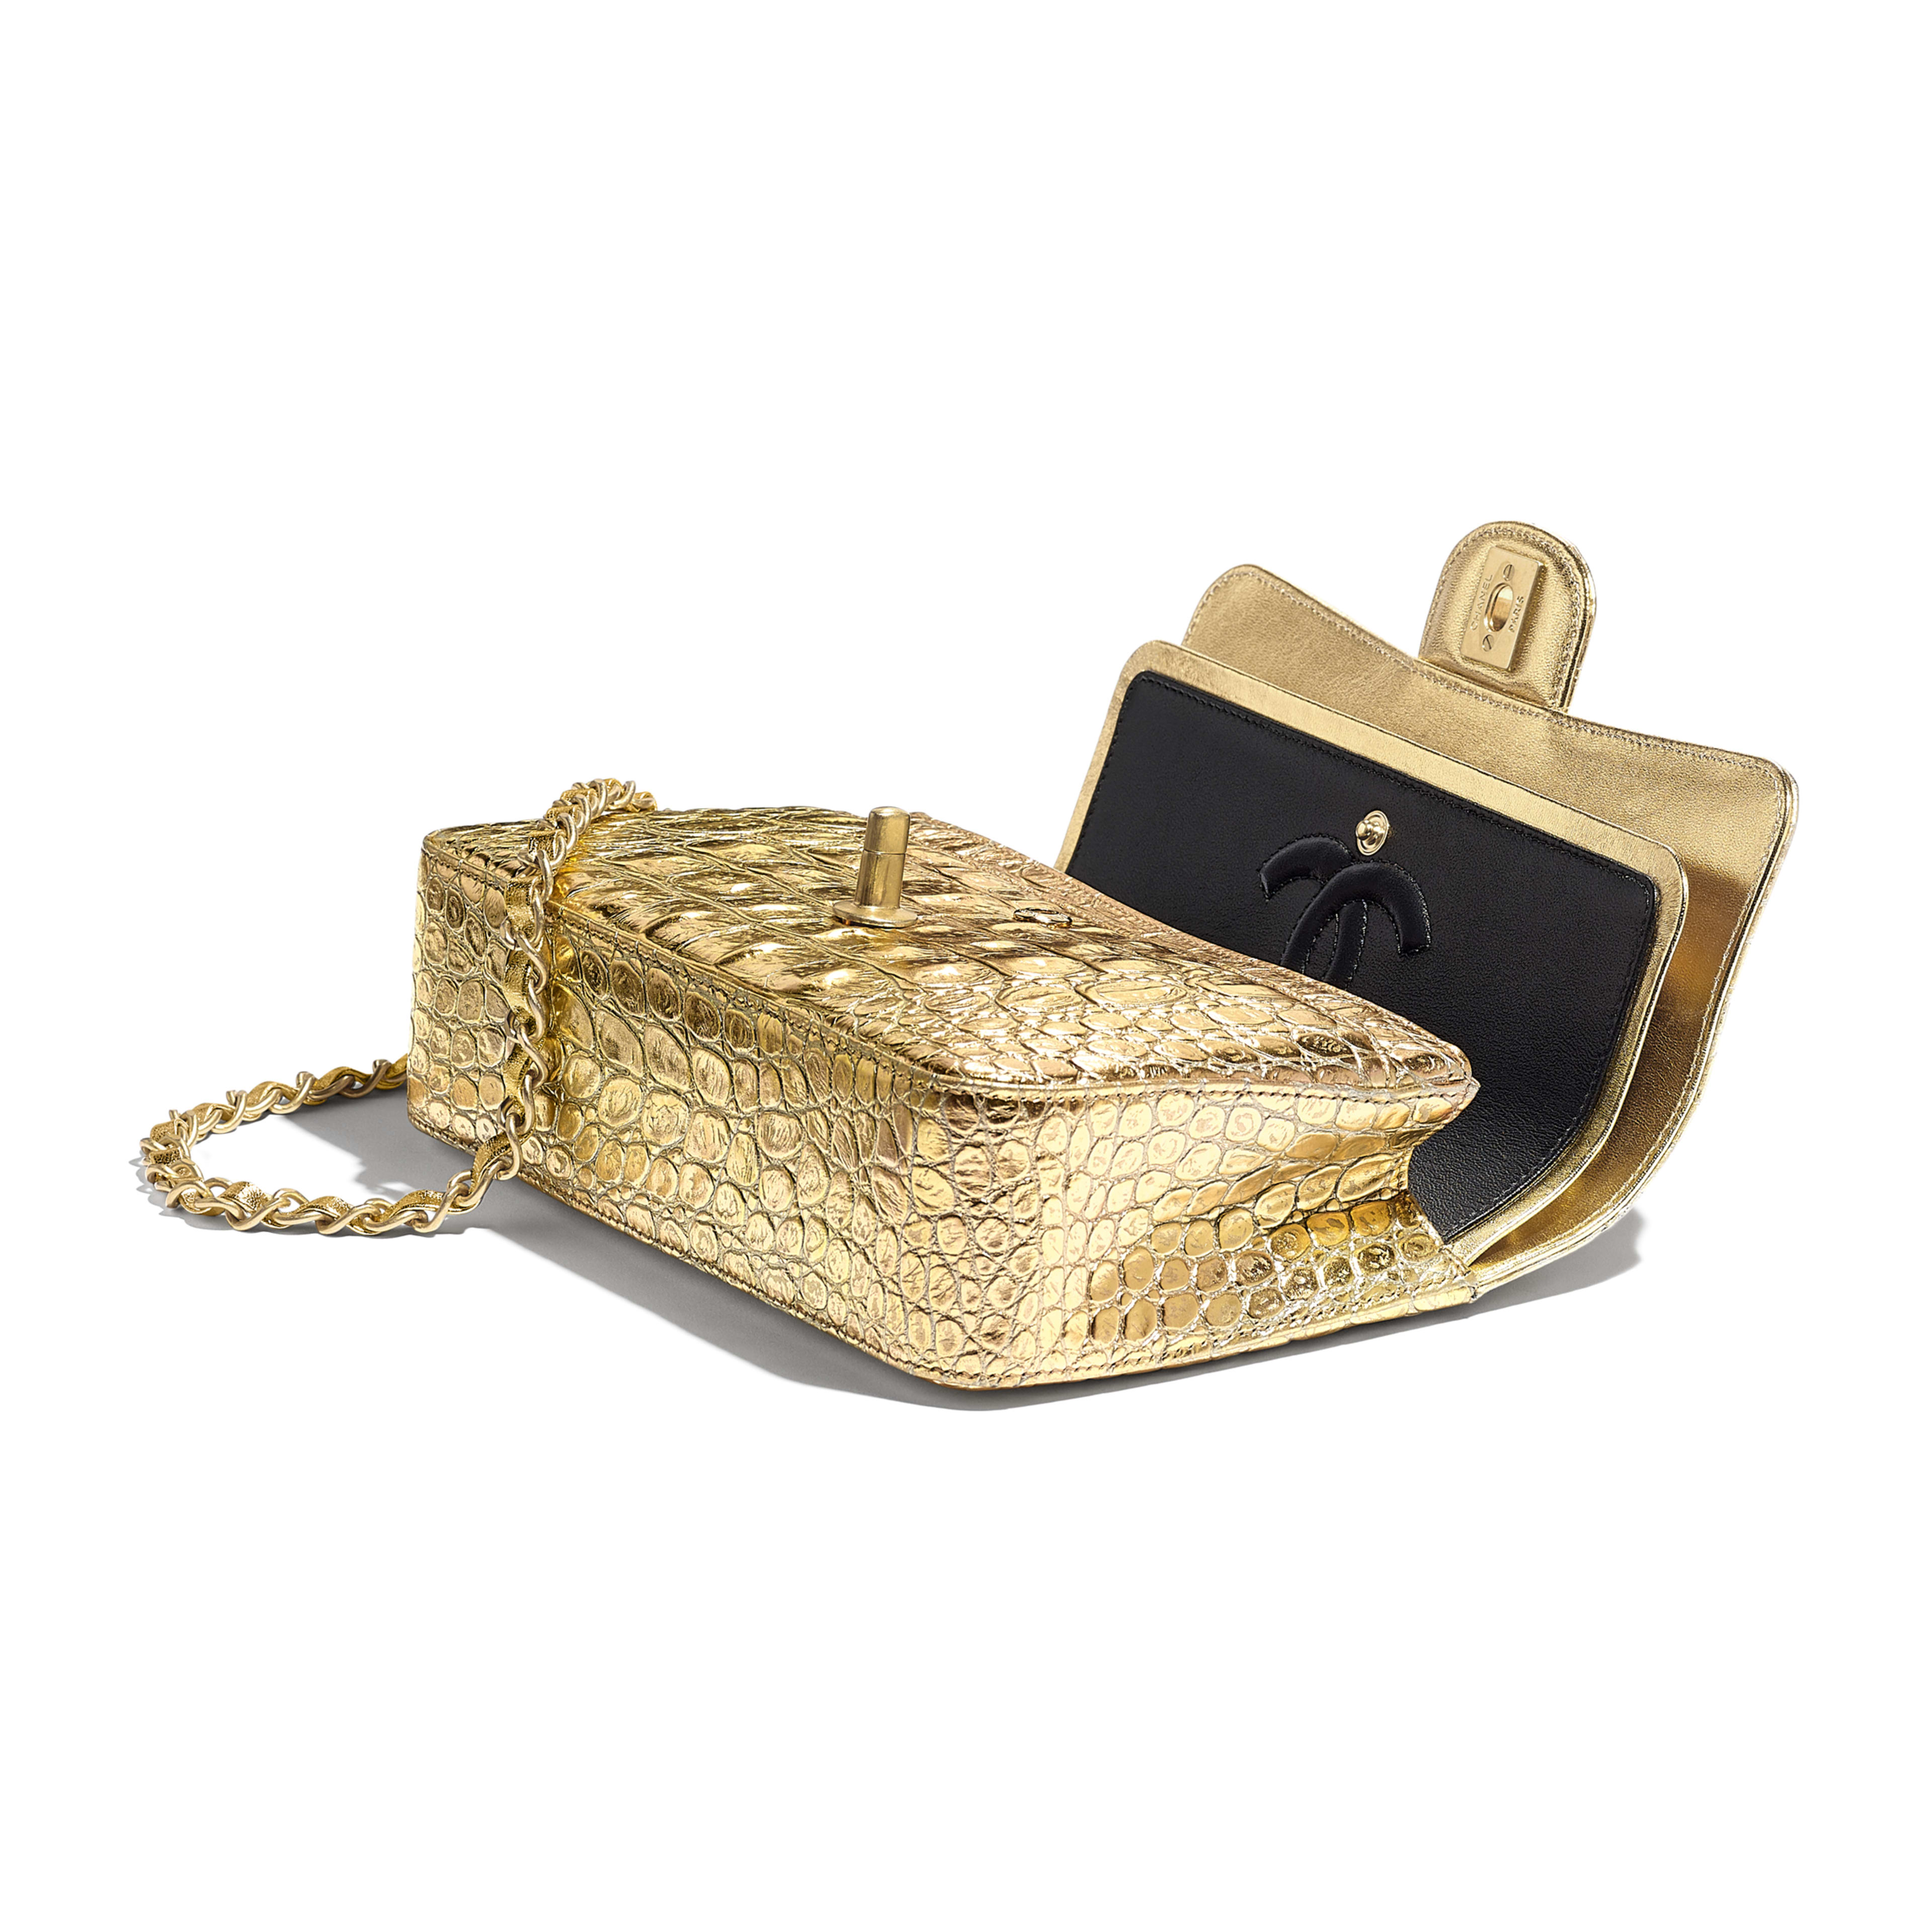 Small Classic Handbag - Gold - Metallic Crocodile Embossed Calfskin & Gold Metal - Other view - see full sized version